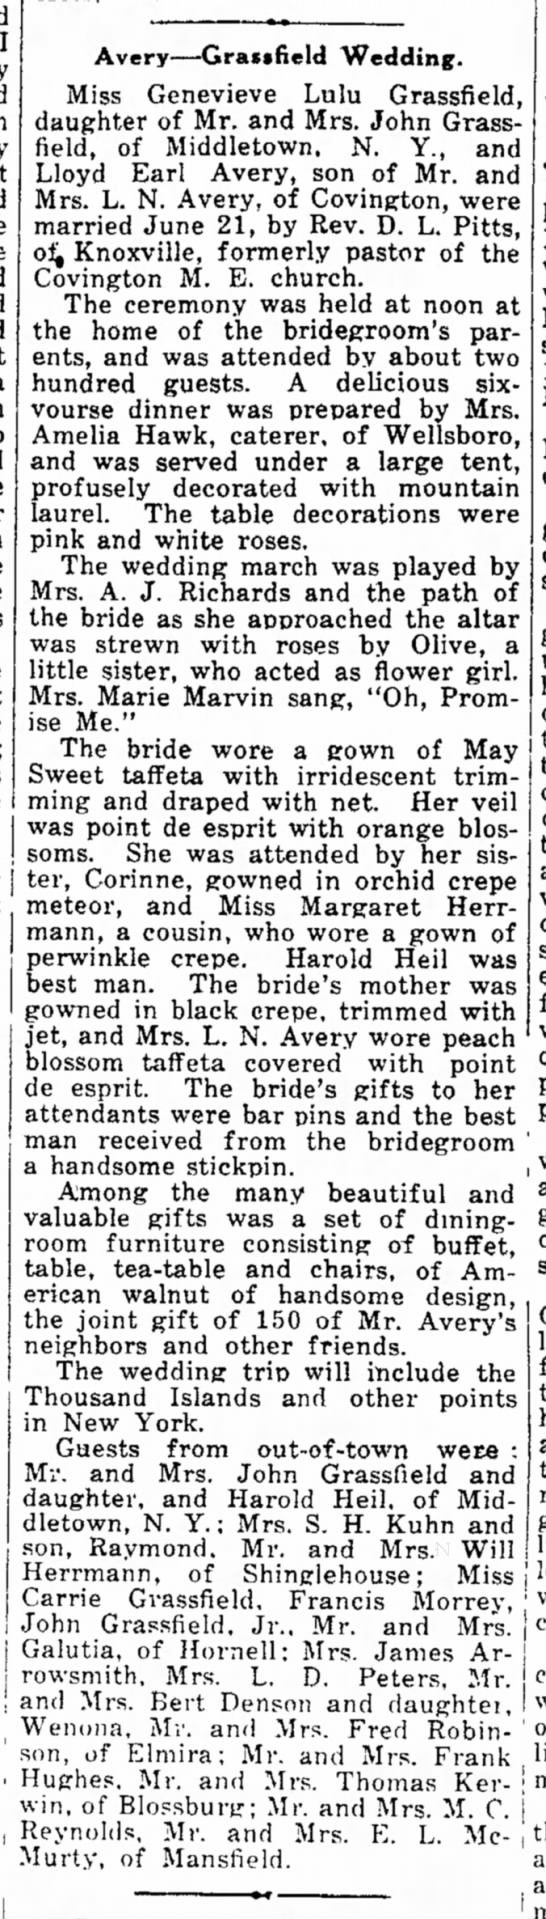 Avery-Grassfield Wedding June 21, 1922 - I thirty the found lot a off in to had large...